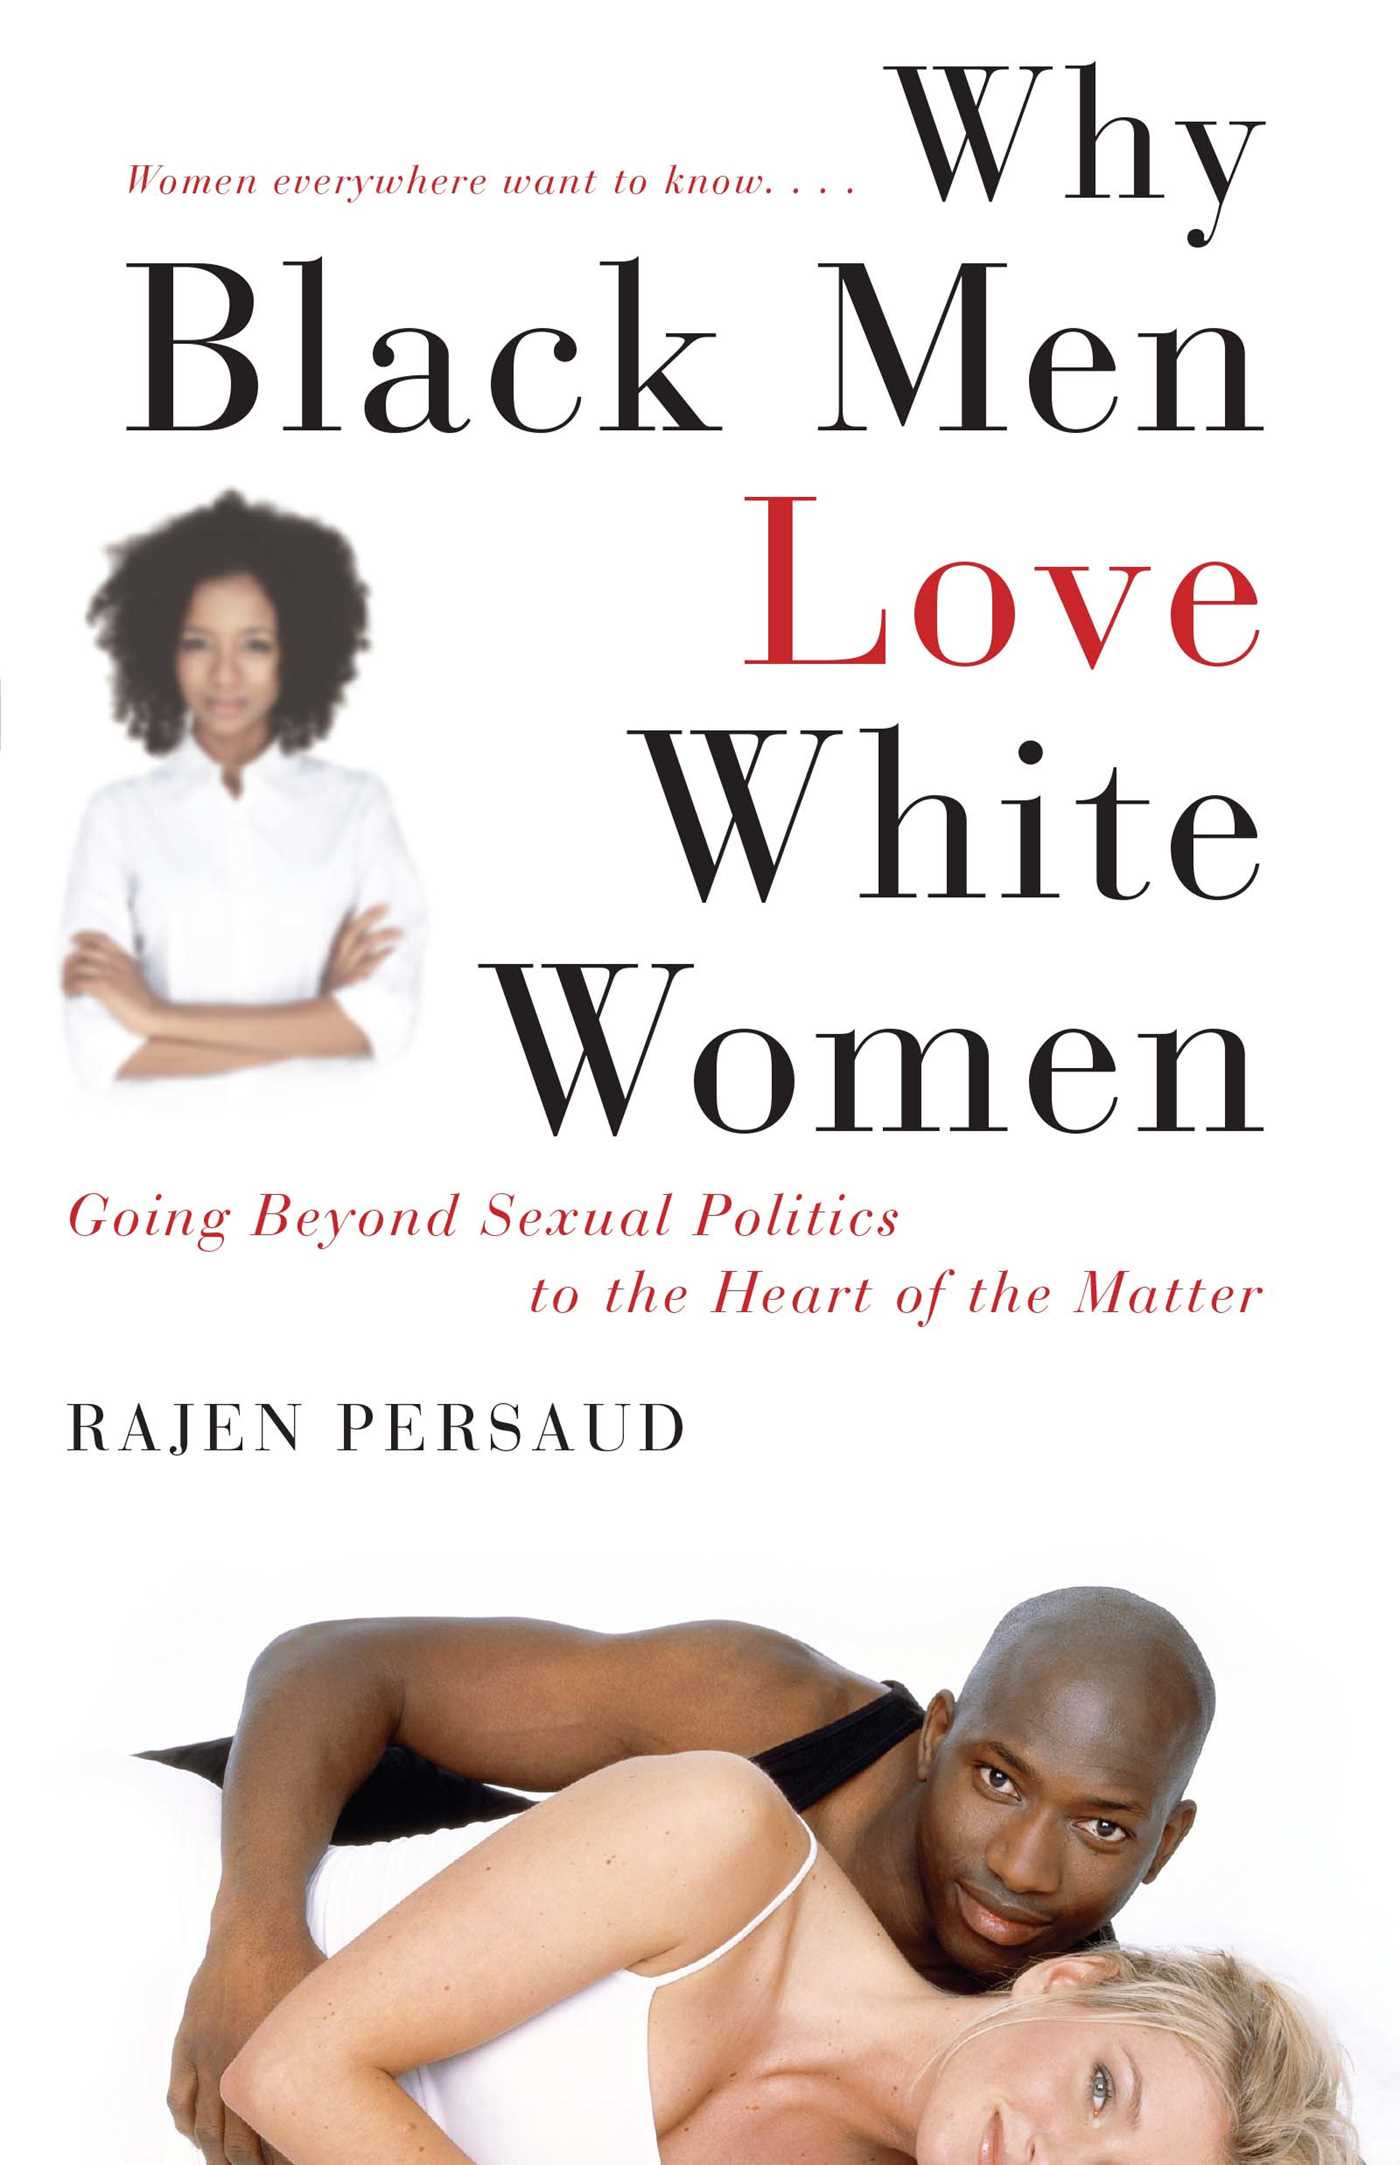 Black men love white women